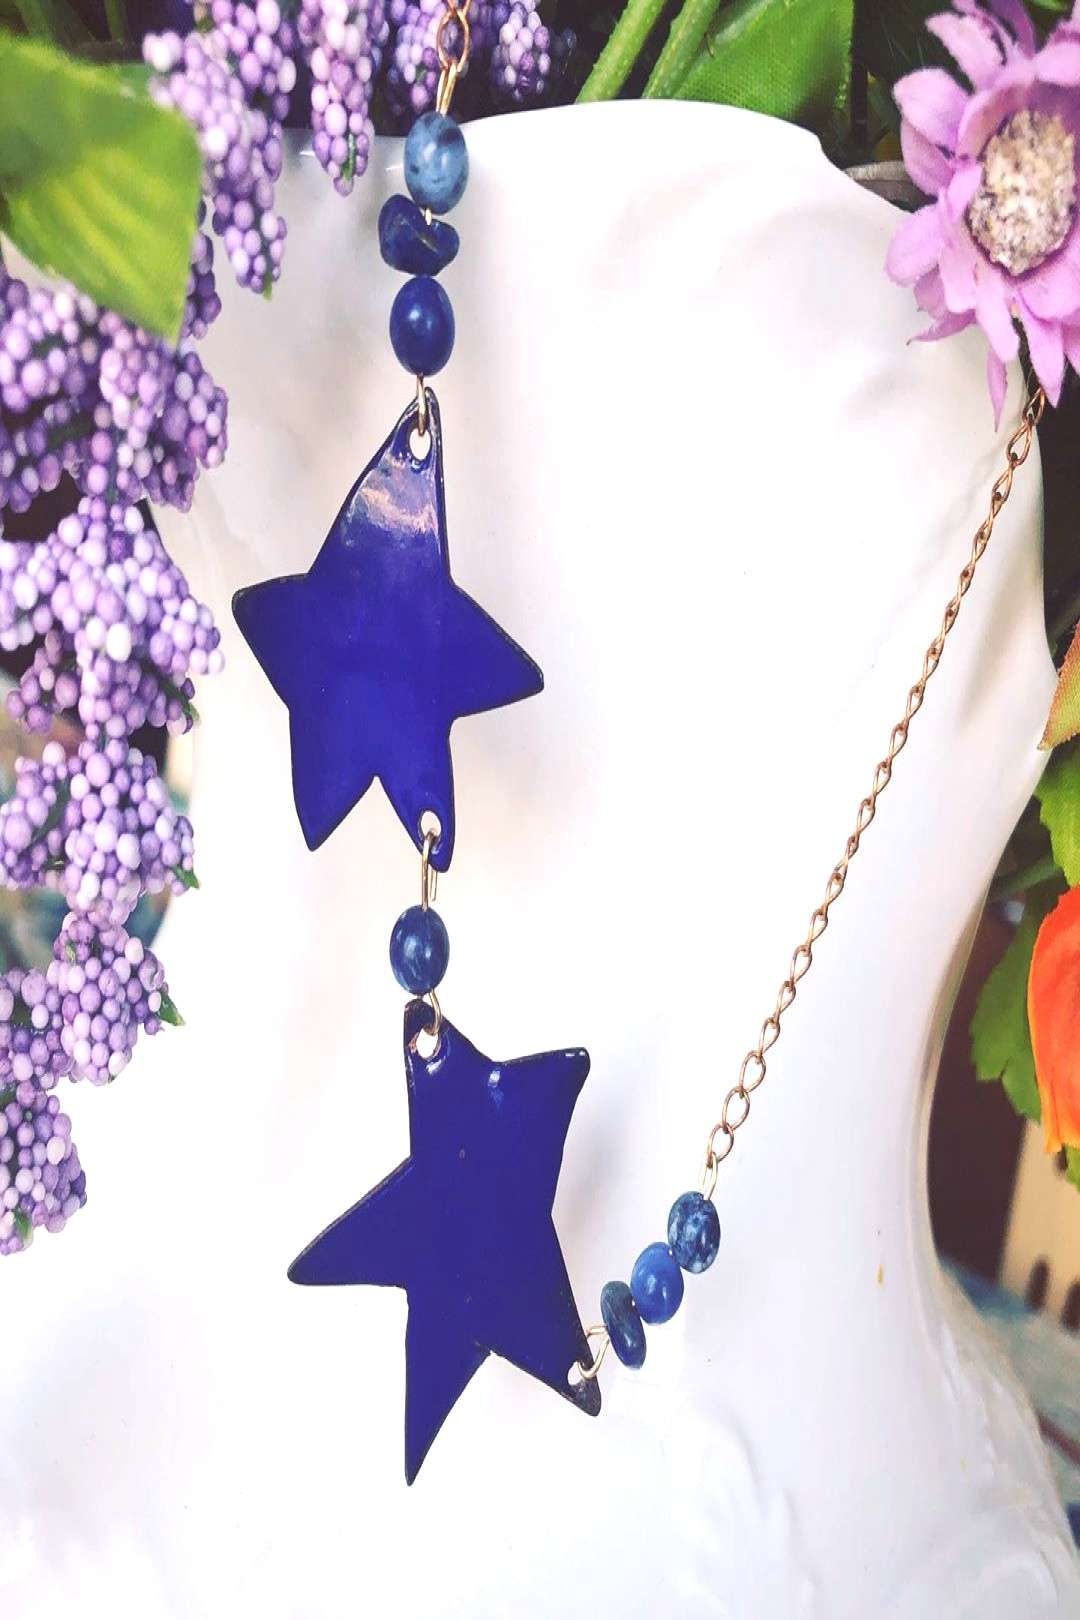 #february #amareya #202020 #people #photo #lapis #night #star #blue #rare #some #the #sky #are #in Some people are as a rare as a blue star in the night sky Lapis lYou can find Christmas gift ideas and more...